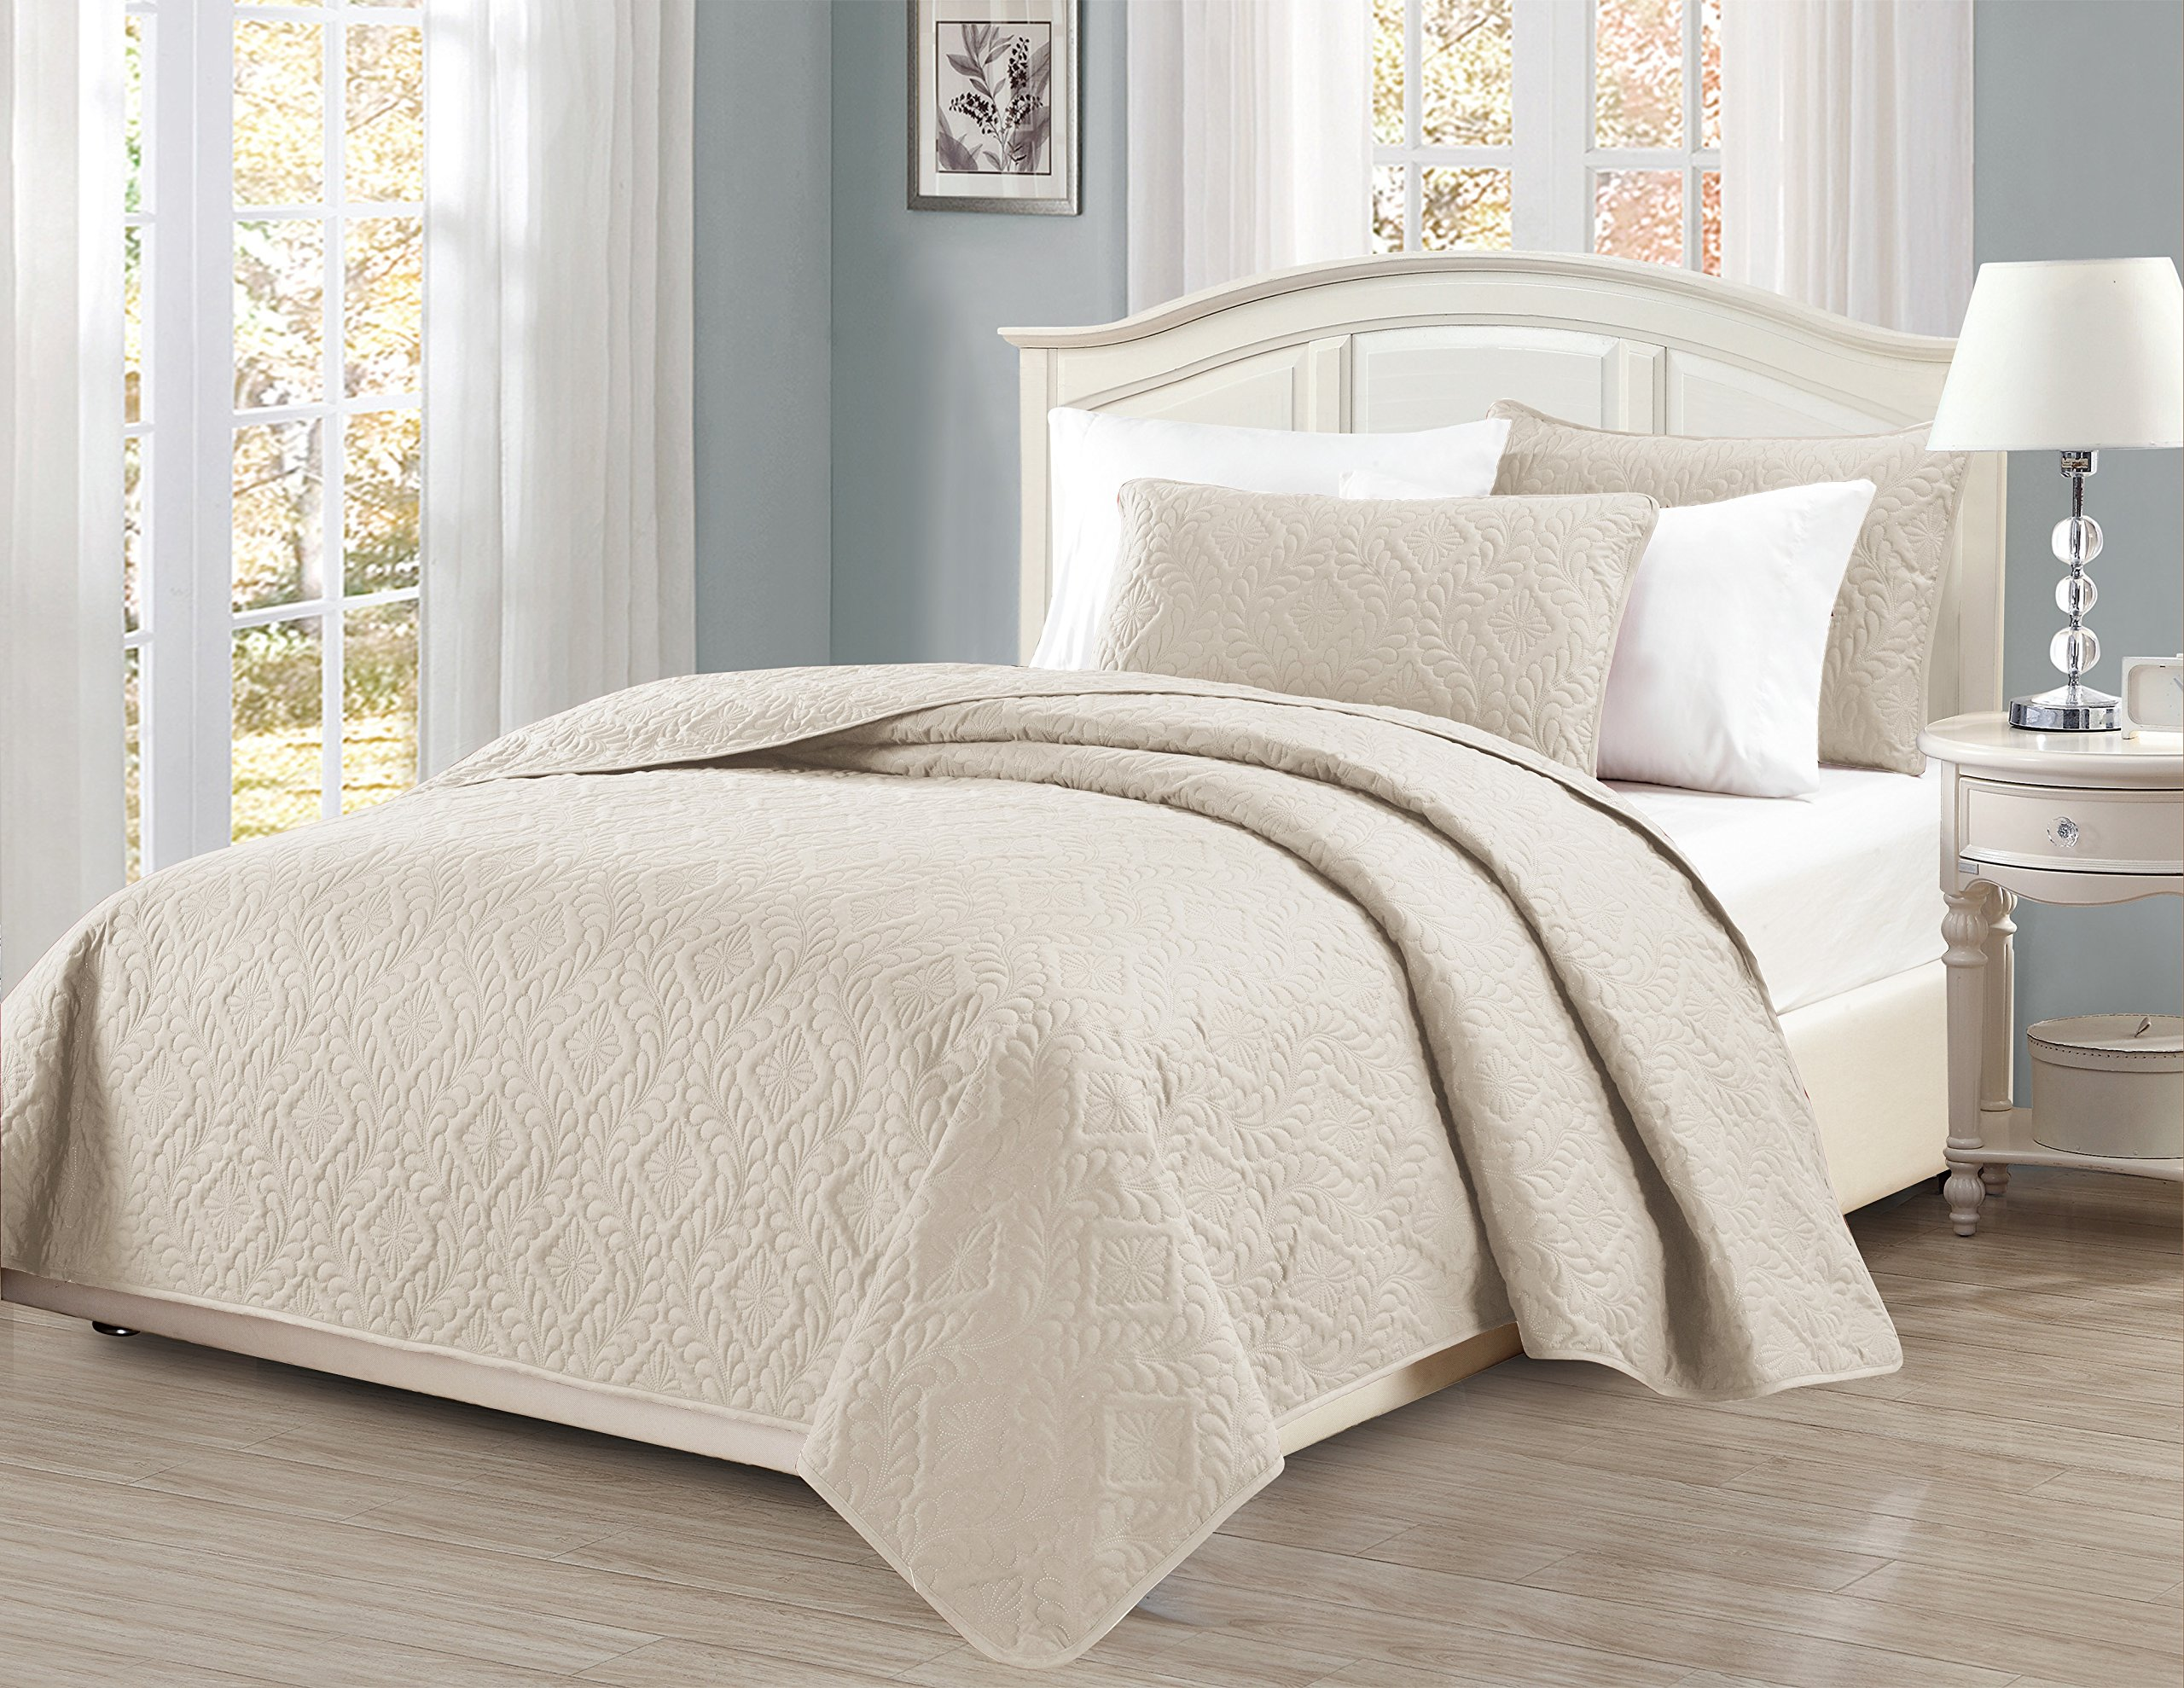 Fancy Collection 3pc King/California King Oversize Bedspread Coverlet Set Embossed Solid Beige New